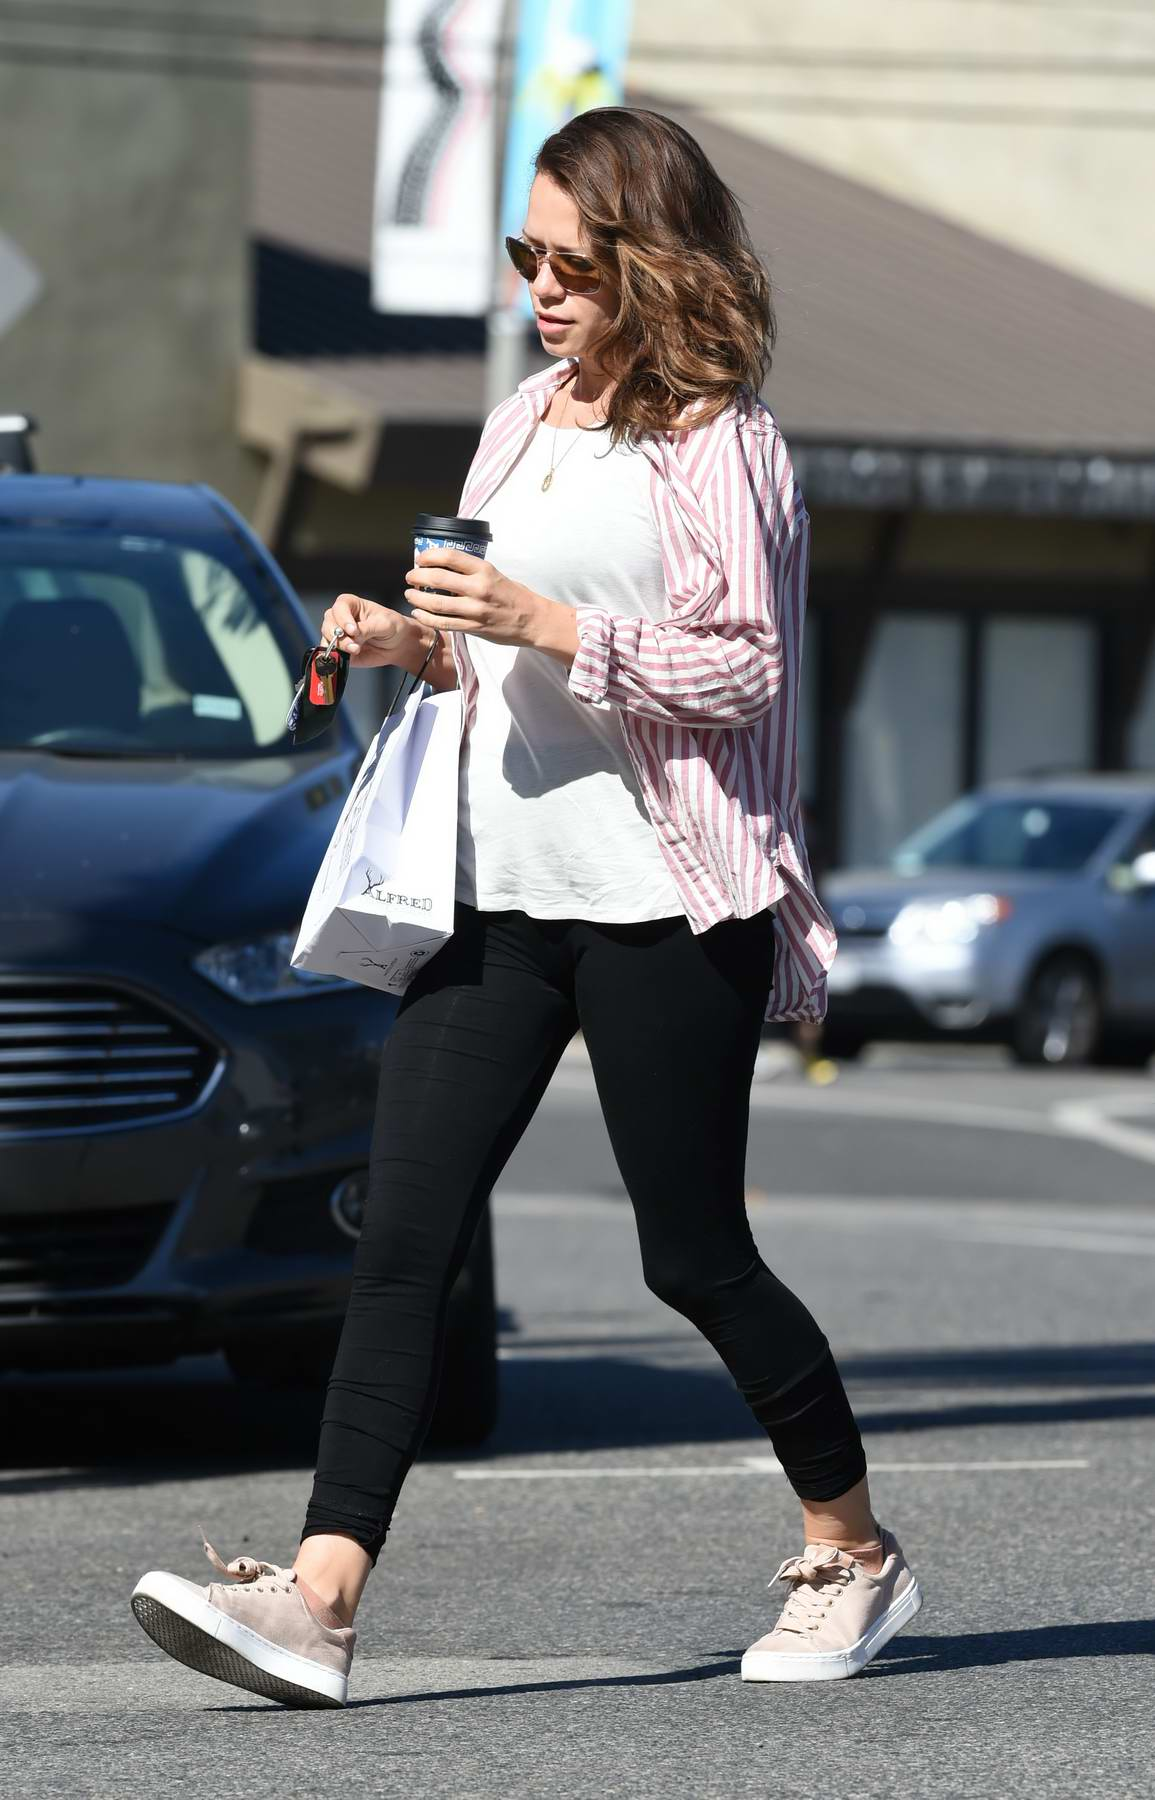 Bethany Joy Lenz dodges traffic on her way to the coffee shop in Los Angeles